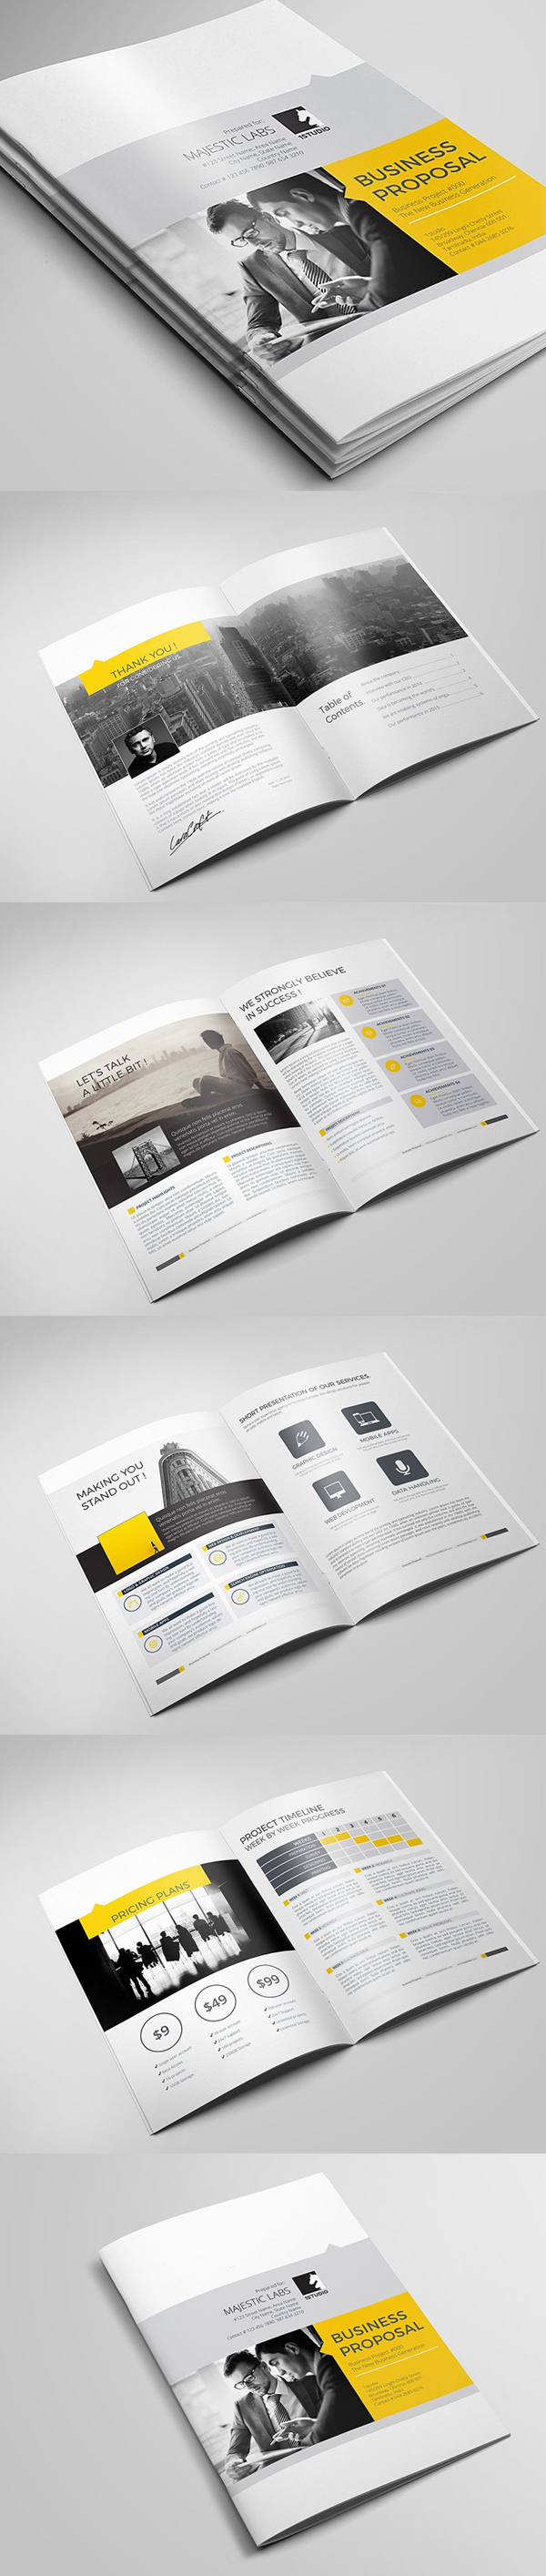 New Brochure Templates Catalog Design Design Graphic Design - Brochure design template